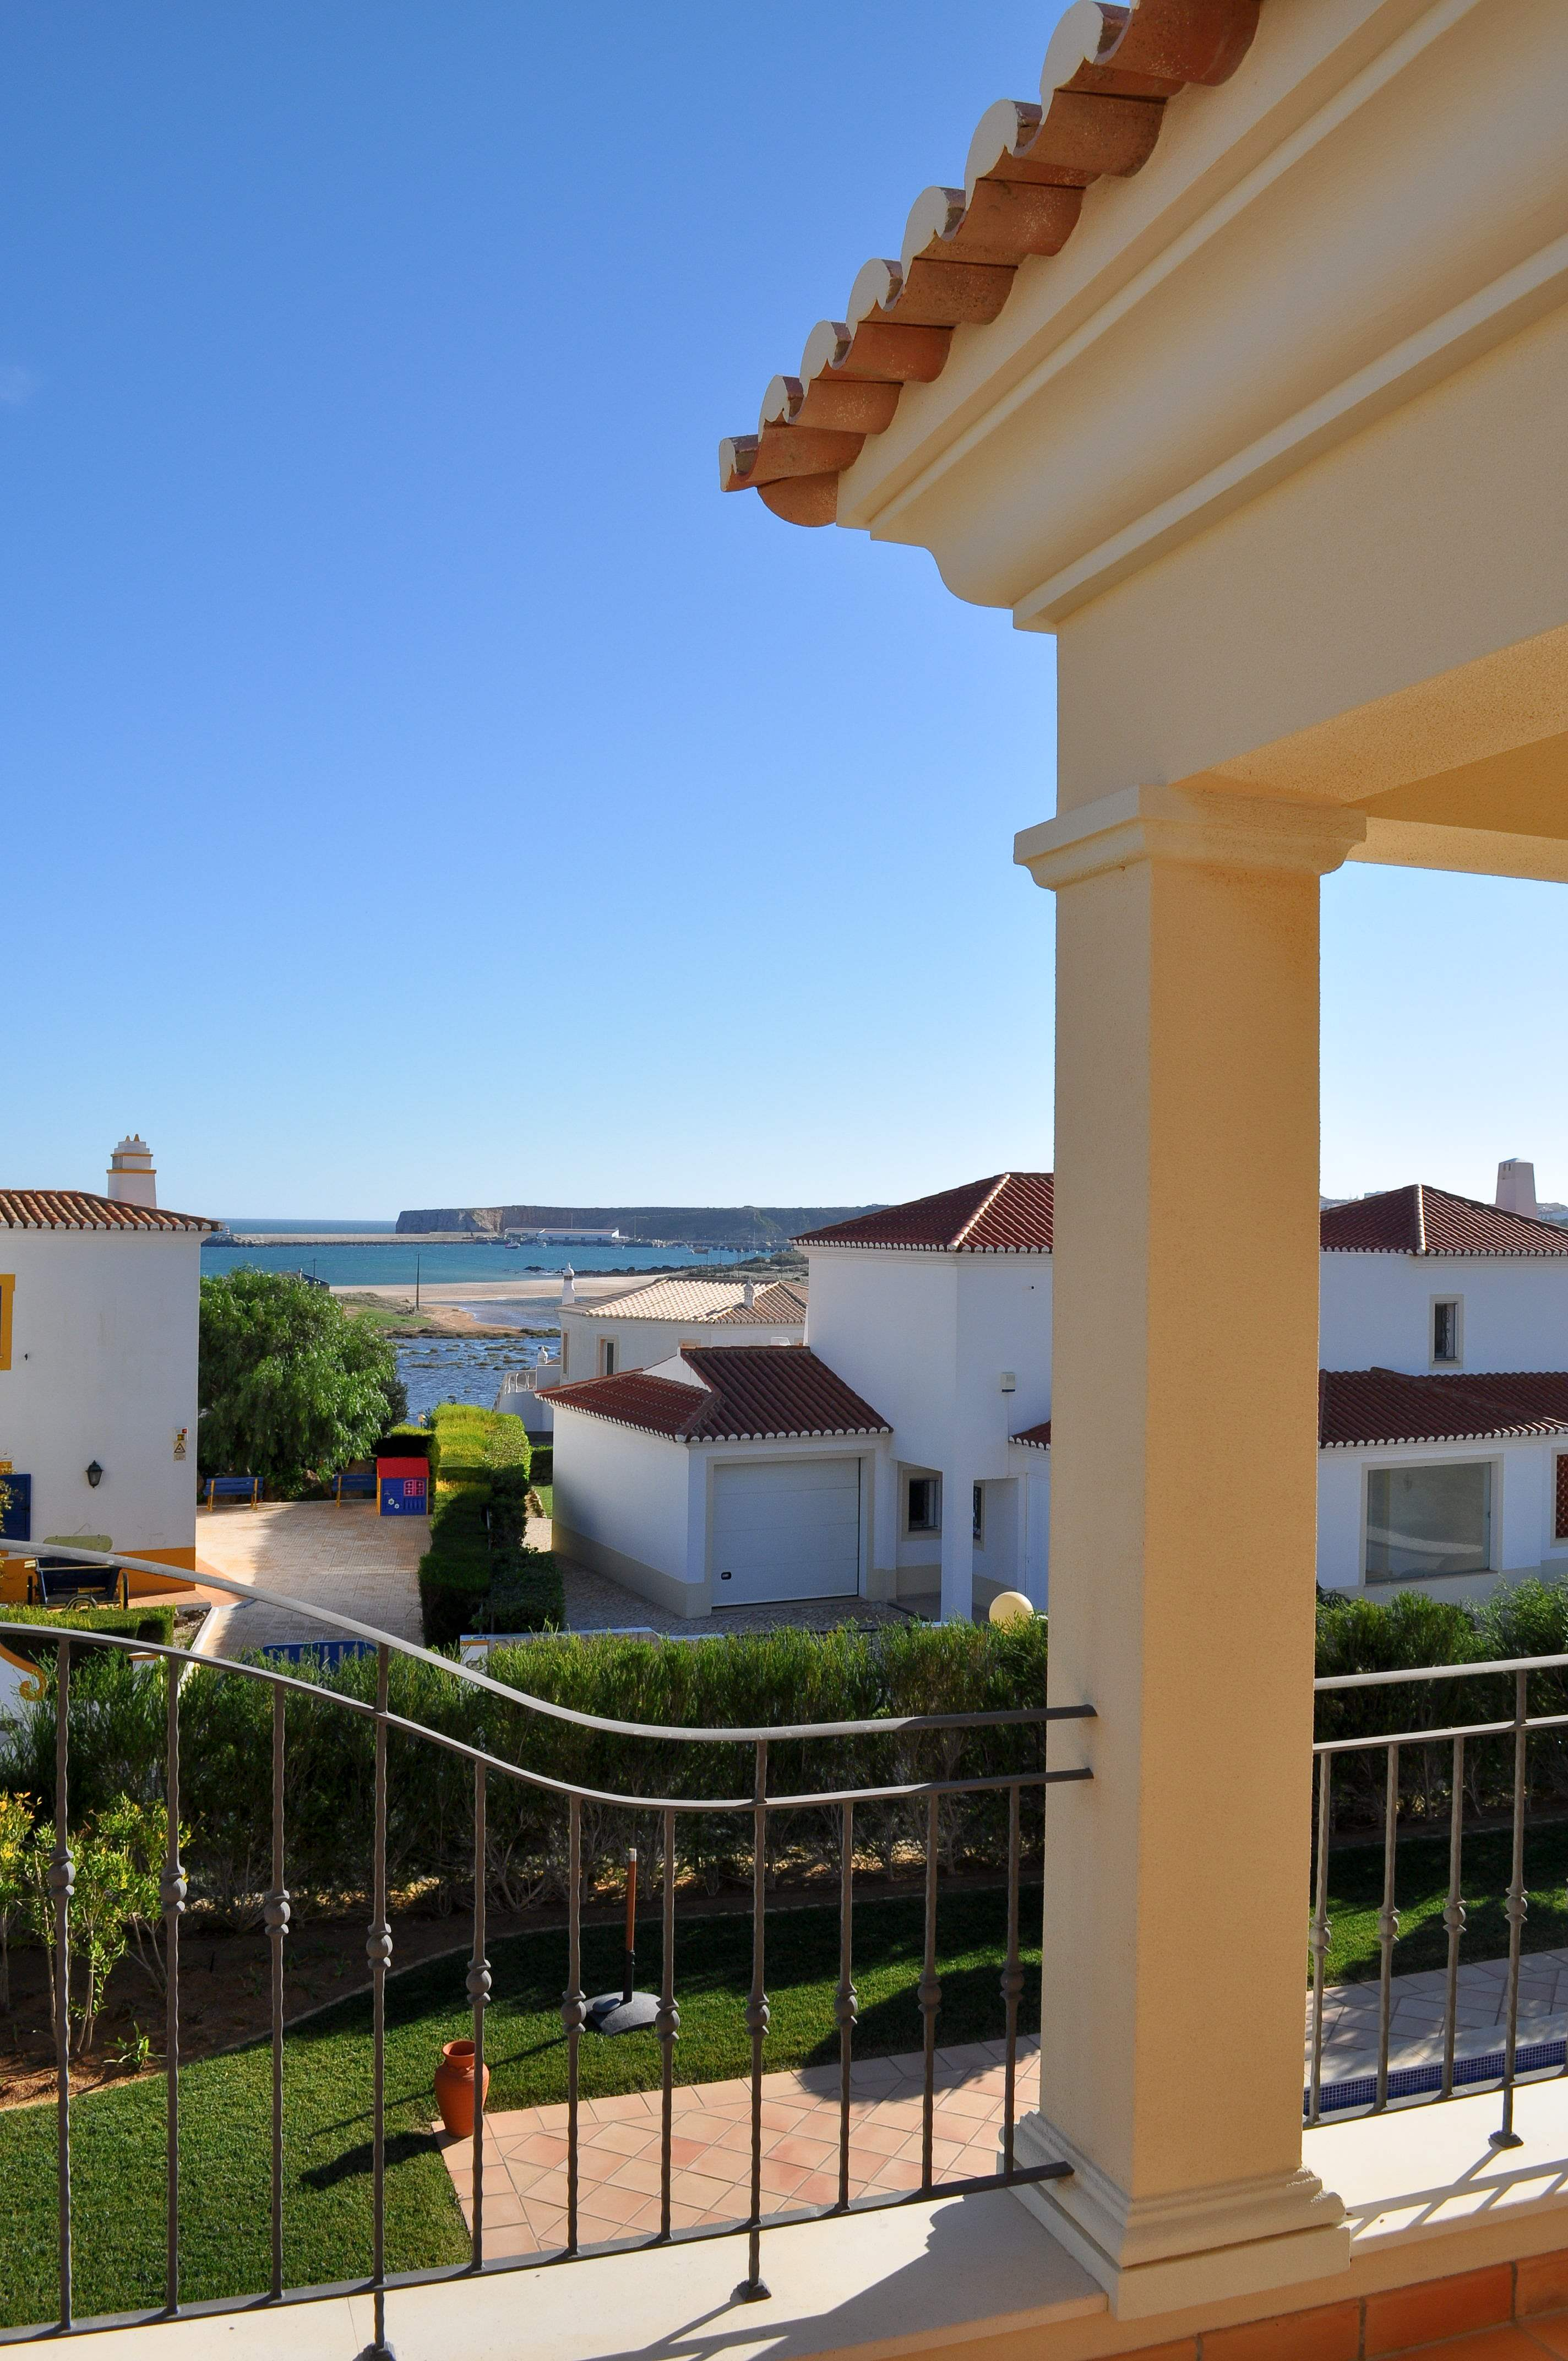 Martinhal Luxury Villa No.32, Three bedroom villa, 3 bedroom villa in Martinhal Sagres, Algarve Photo #4